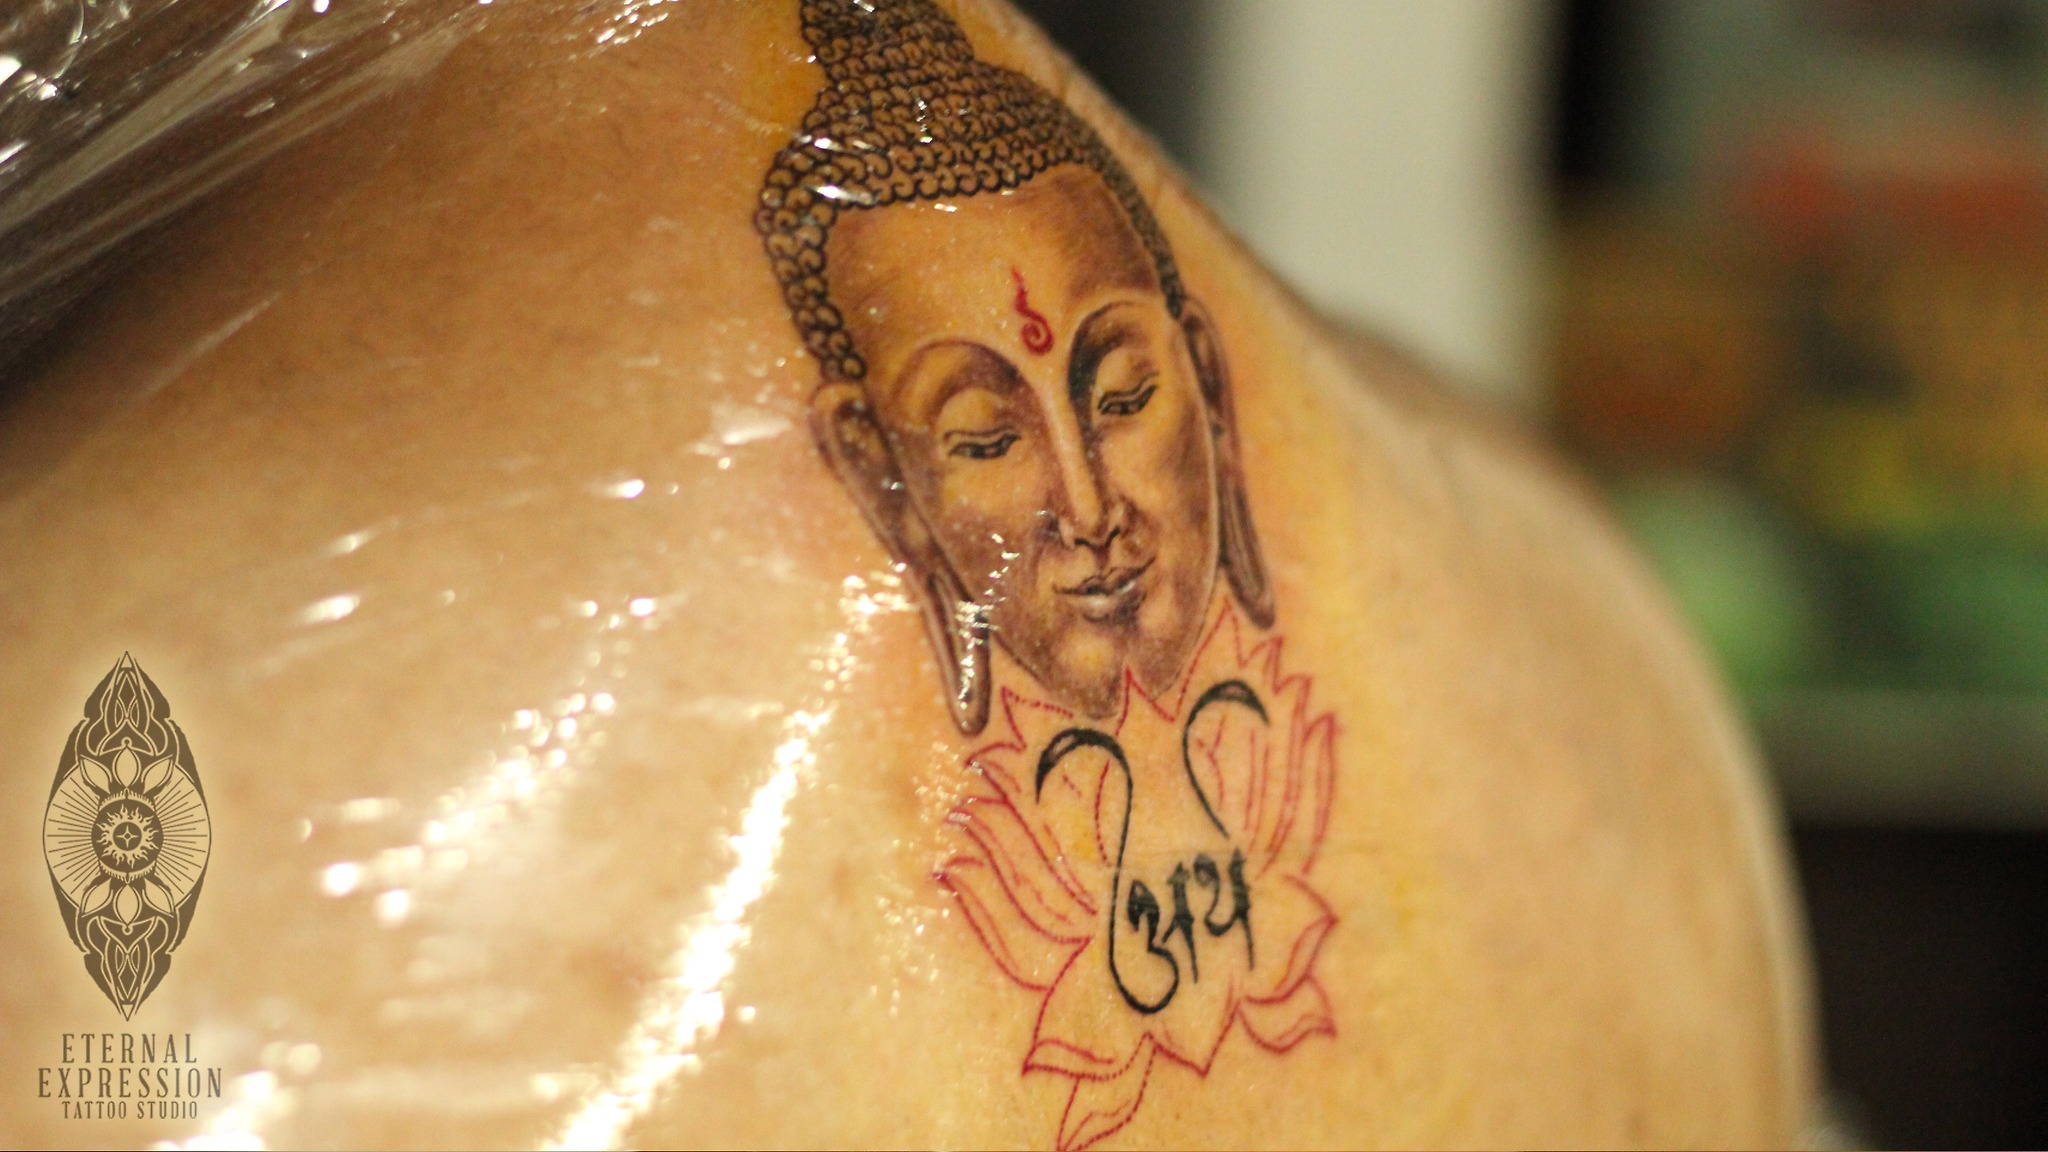 Tattoo and piercing an expression of the individual